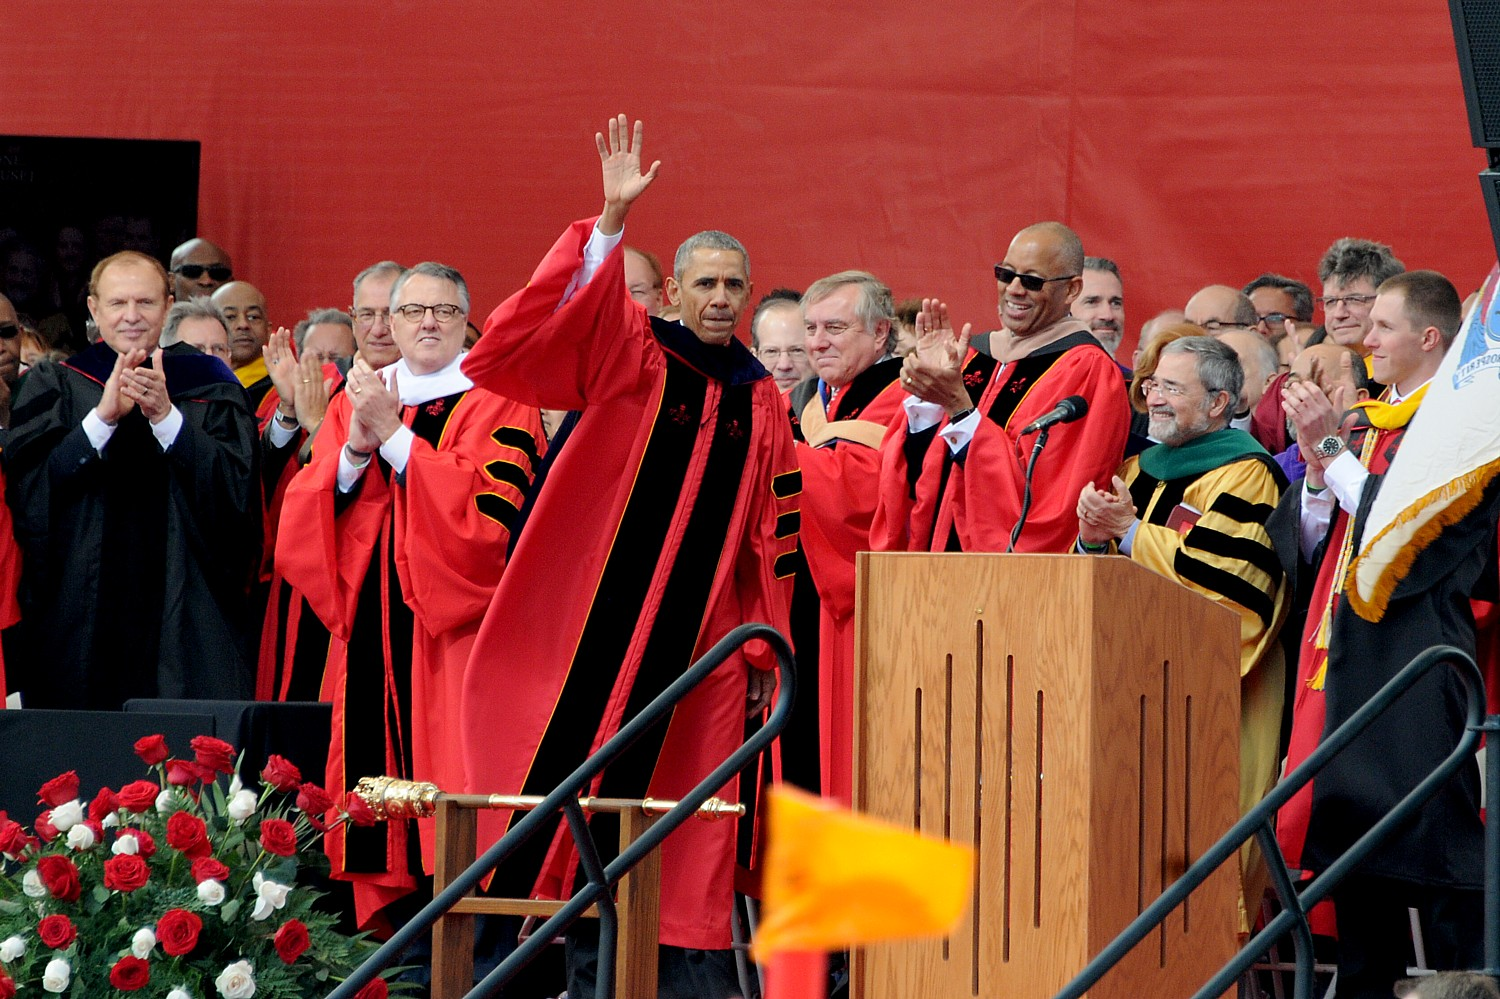 President Obama gets standing ovation after addressing the 250th anniversary Rutgers University Commencement © 2016 Karen Rubin/news-photos-features.com